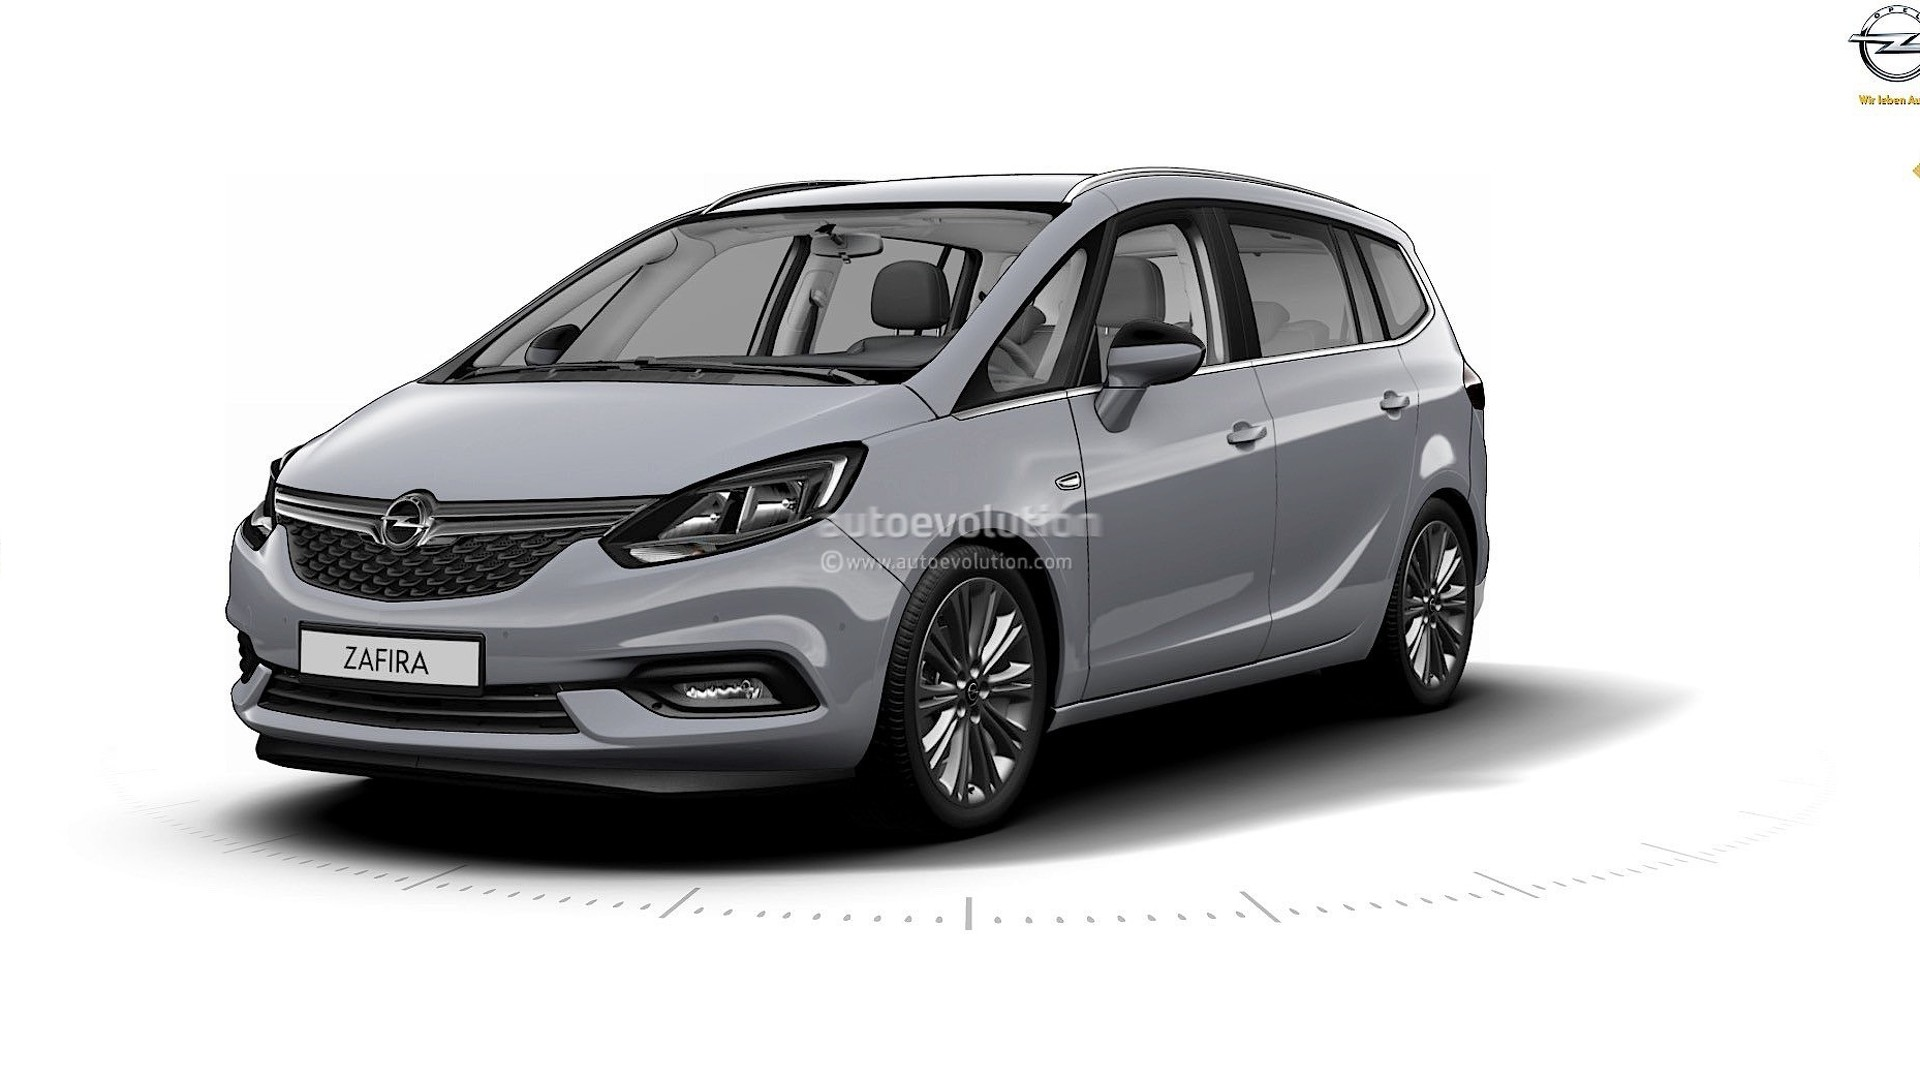 2017 opel zafira leak reveals an astra inspied front fascia. Black Bedroom Furniture Sets. Home Design Ideas